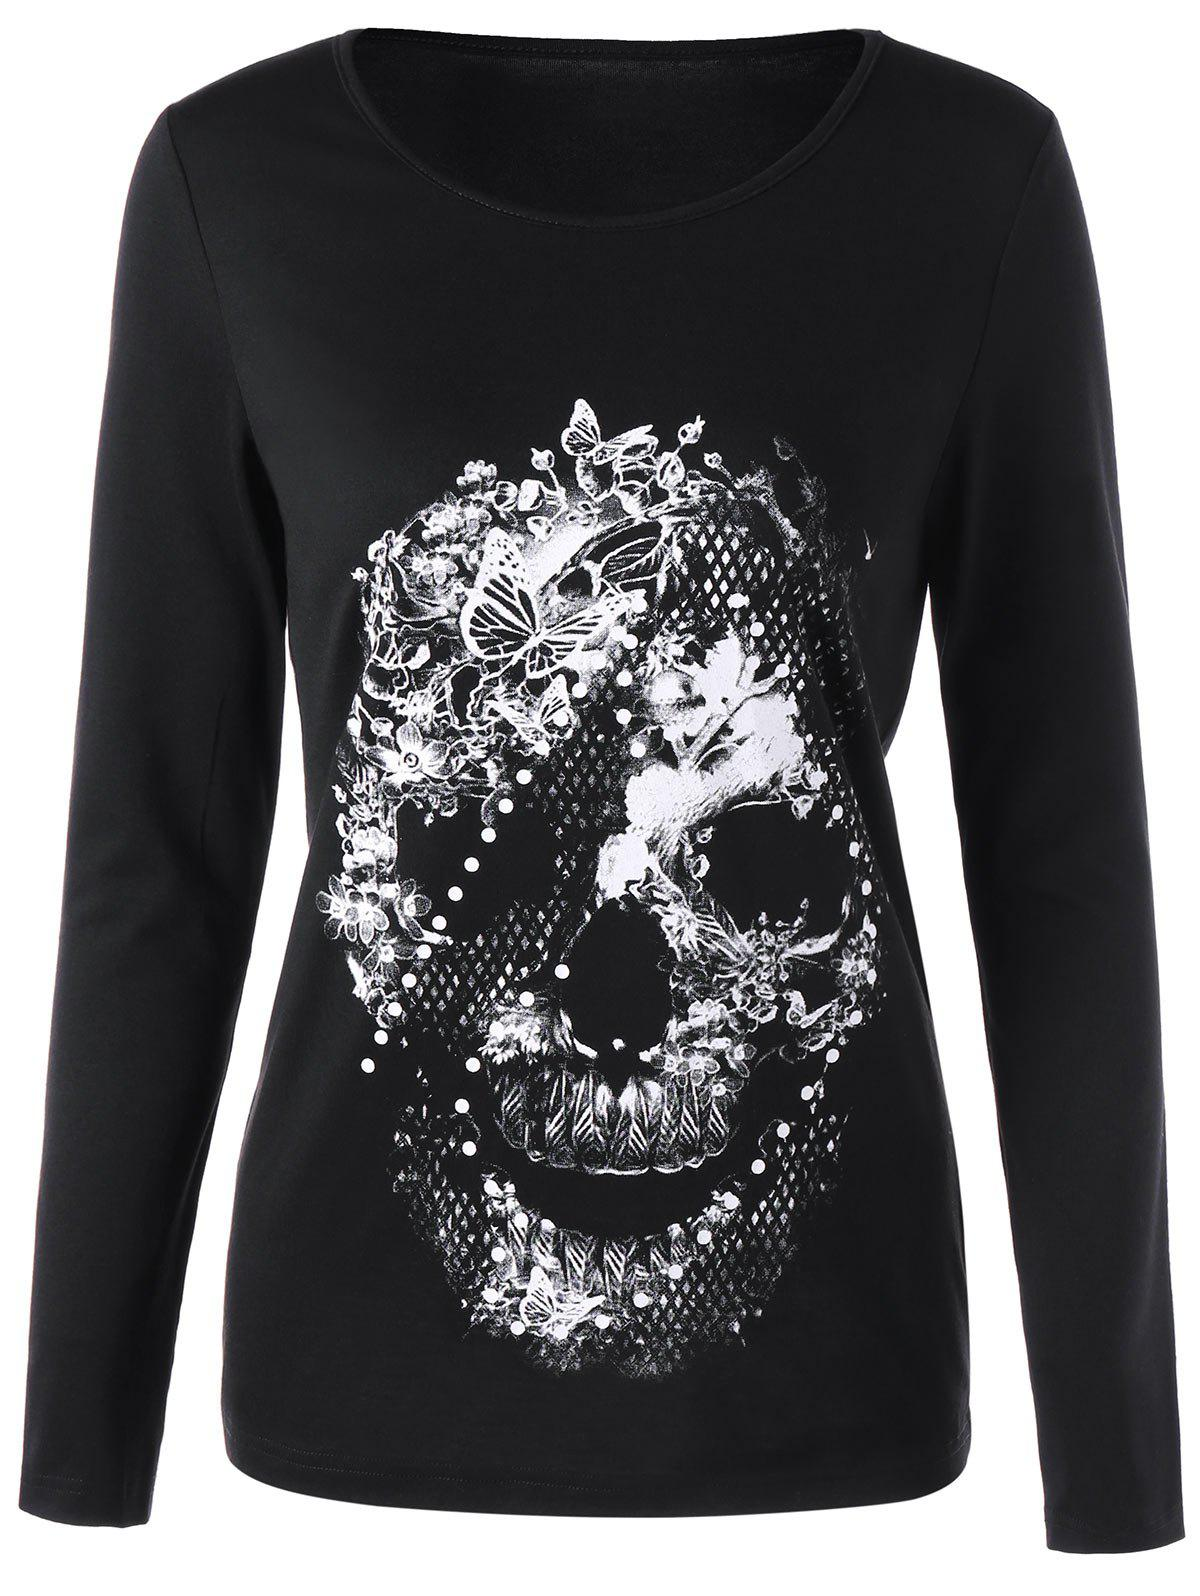 Skull Butterfly Long Sleeve T-shirtWOMEN<br><br>Size: M; Color: BLACK; Material: Polyester,Spandex; Shirt Length: Regular; Sleeve Length: Full; Collar: Round Neck; Style: Casual; Pattern Type: Butterfly,Floral,Skull; Season: Fall,Spring; Weight: 0.2200kg; Package Contents: 1 x Skull;